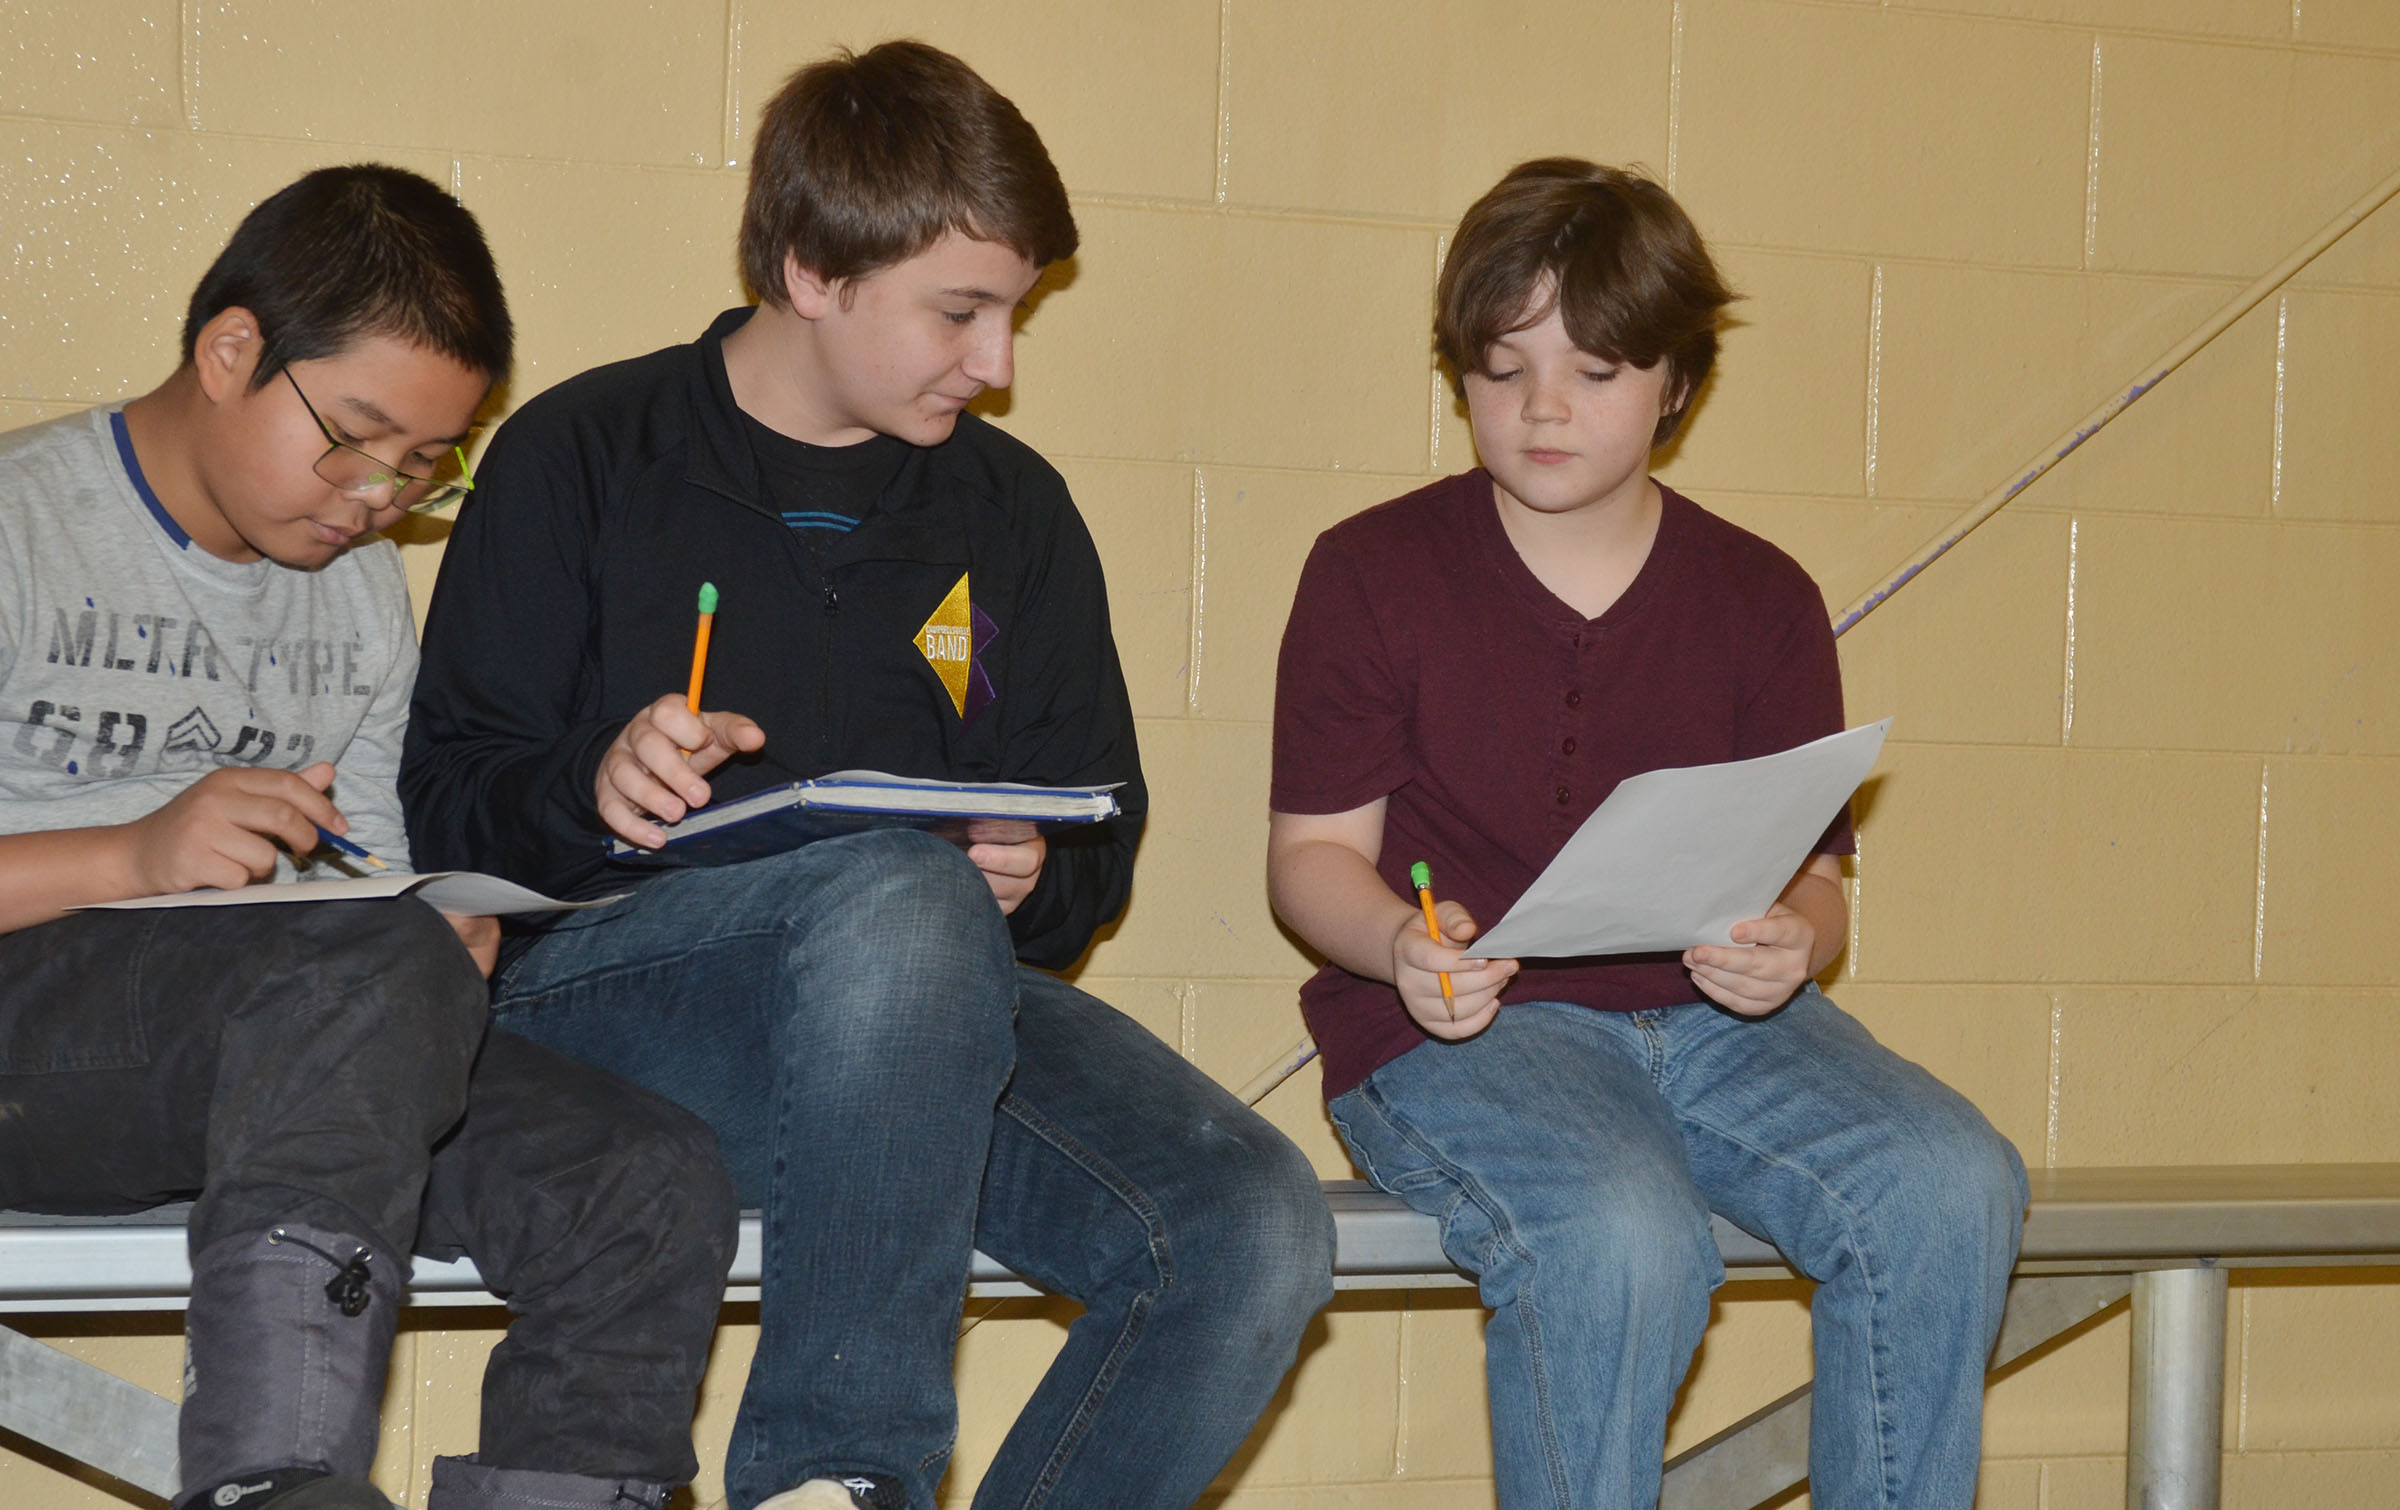 CMS fifth-graders Kewin Dong, at left, and Kayden Birdwell, at right, work with eighth-grader Nick Drew to discuss the American Revolution.